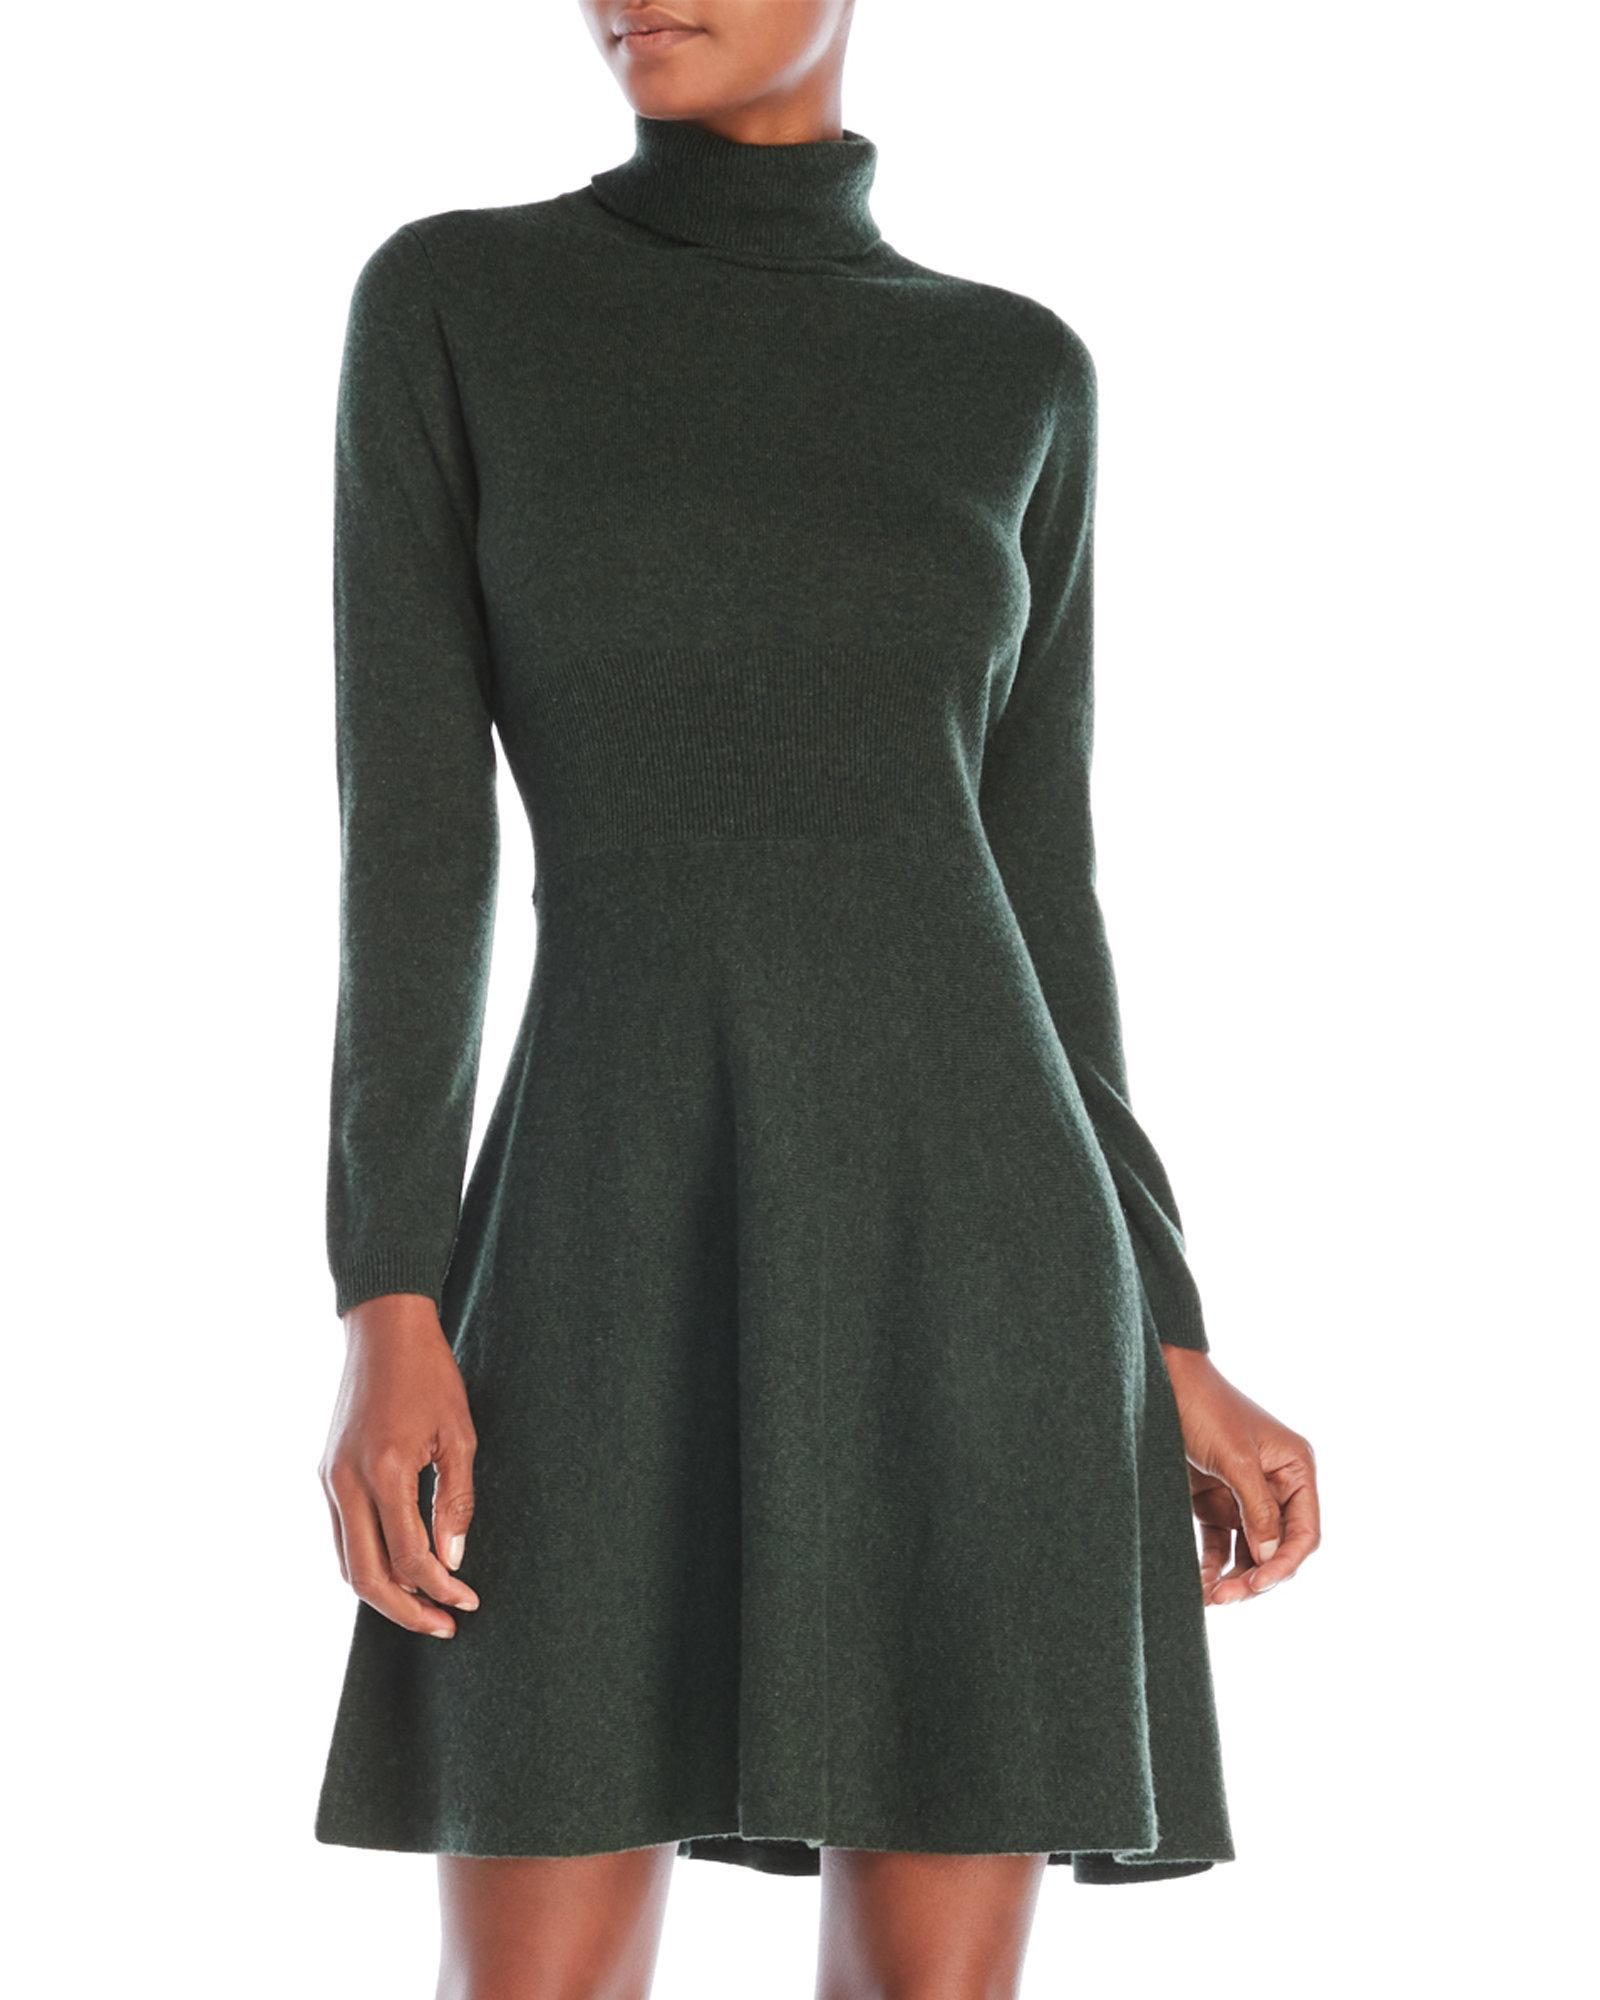 b82fabcd2ce1 Lyst - Ply Cashmere Petite Turtleneck Sweater Dress in Green